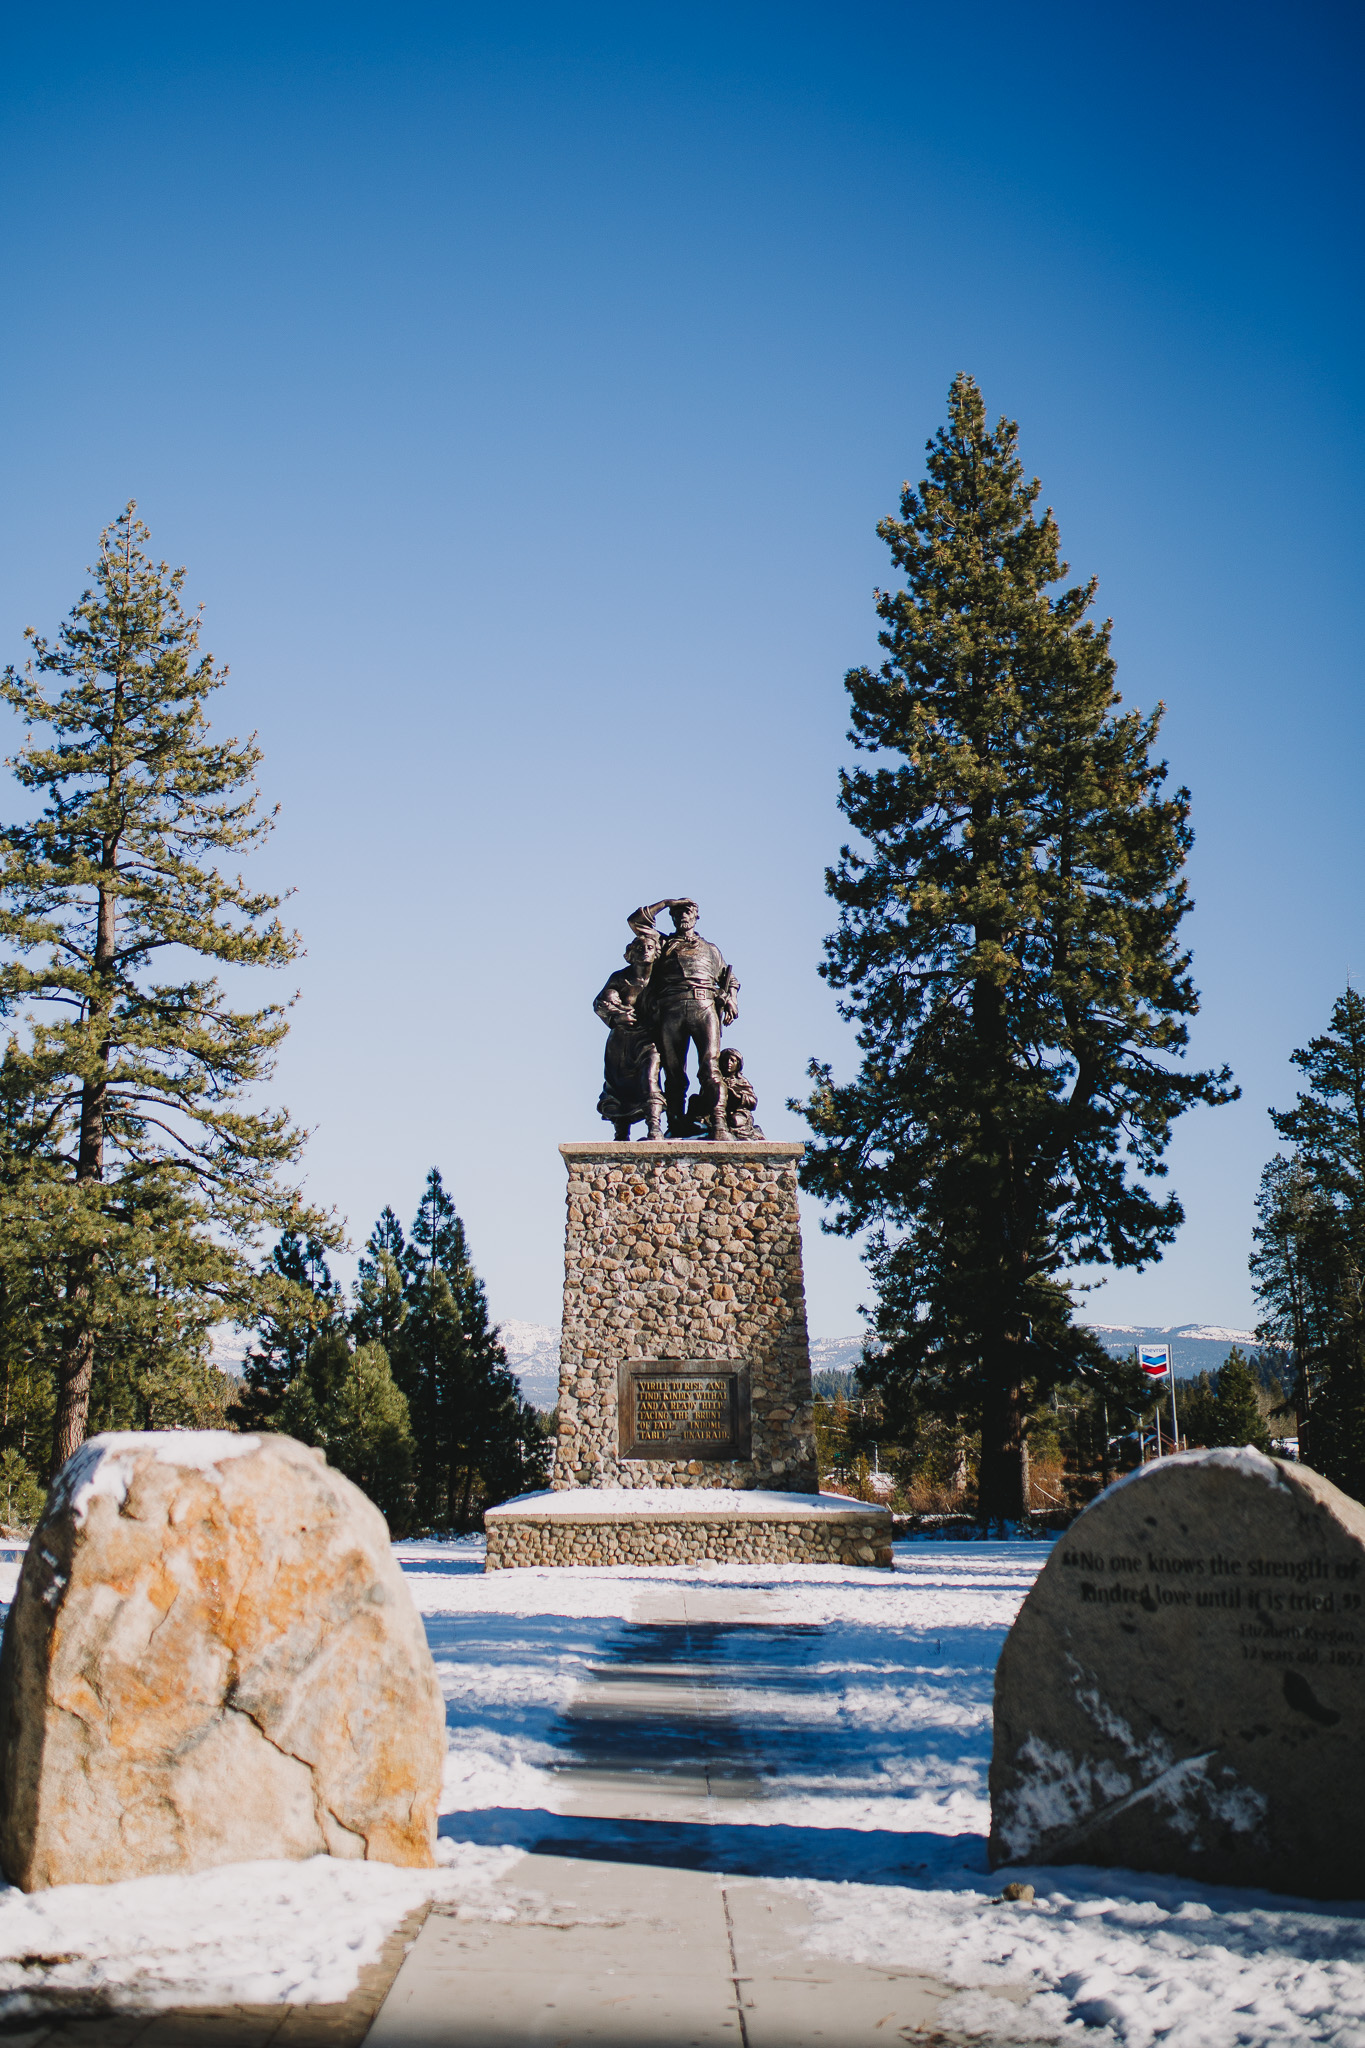 Archer Inspired Photography Family Road Trip Lifestyle Photos NorCal Sacramento South Lake Tahoe Reno Truckee Documentary Memories-286.jpg